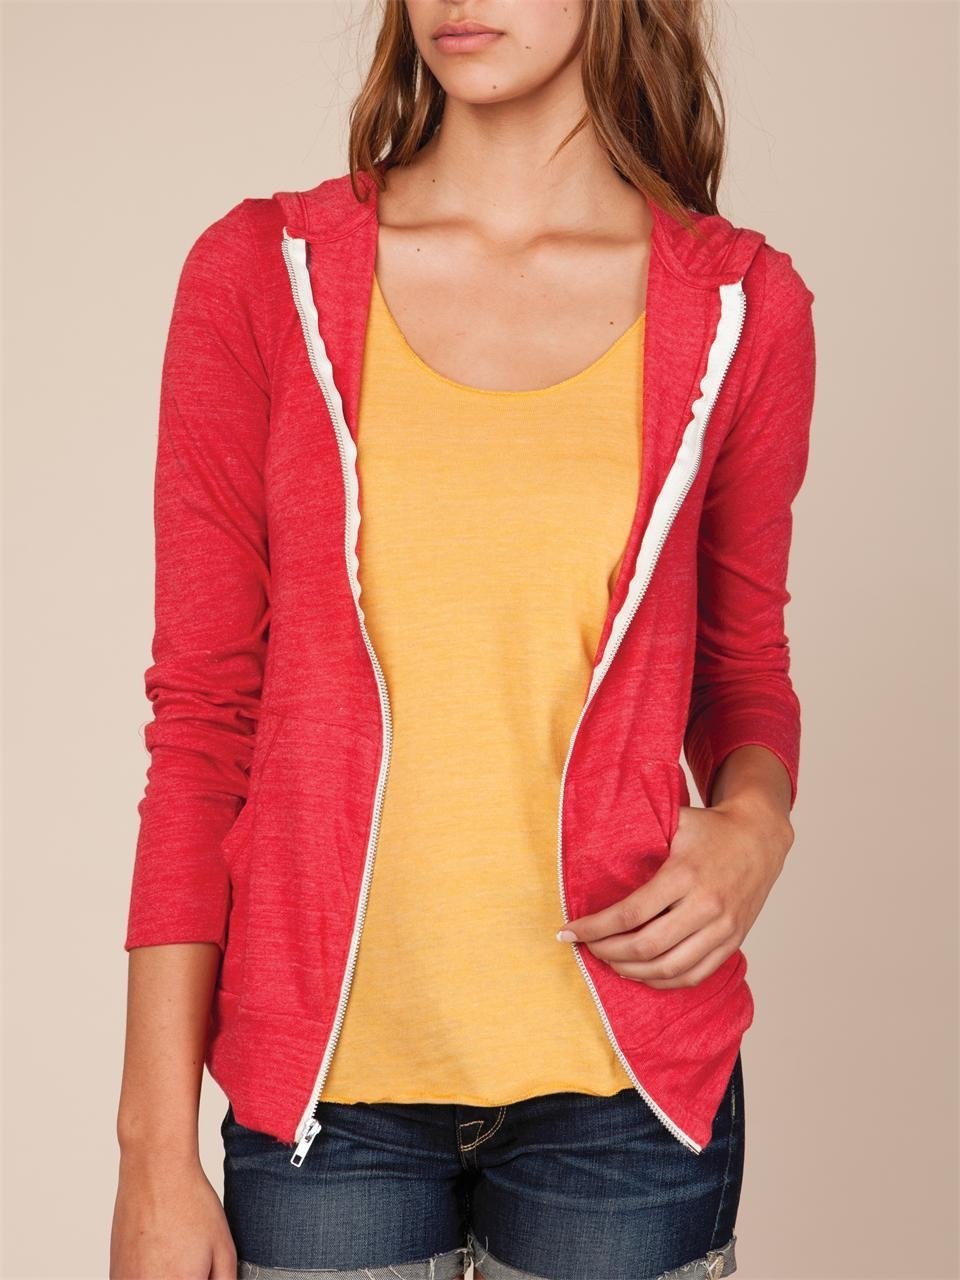 Lyst - Alternative Apparel Womens Ecoheather Zip Hoodie in Red 2275a3f569